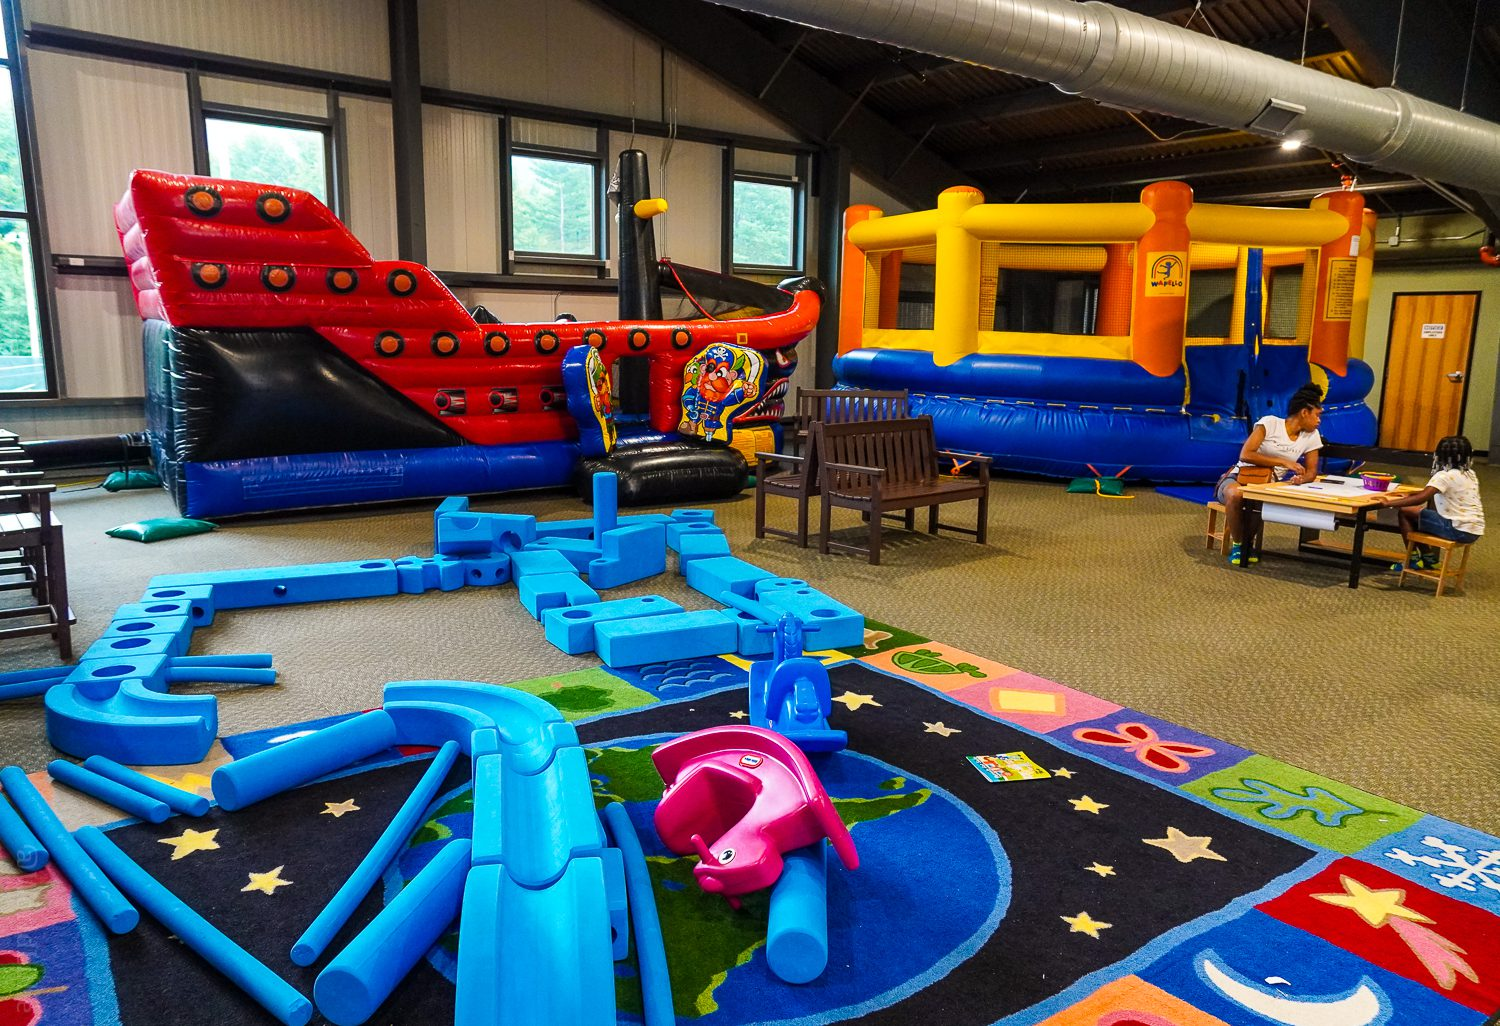 Bouncy houses and building foam at FunZone 2.0.